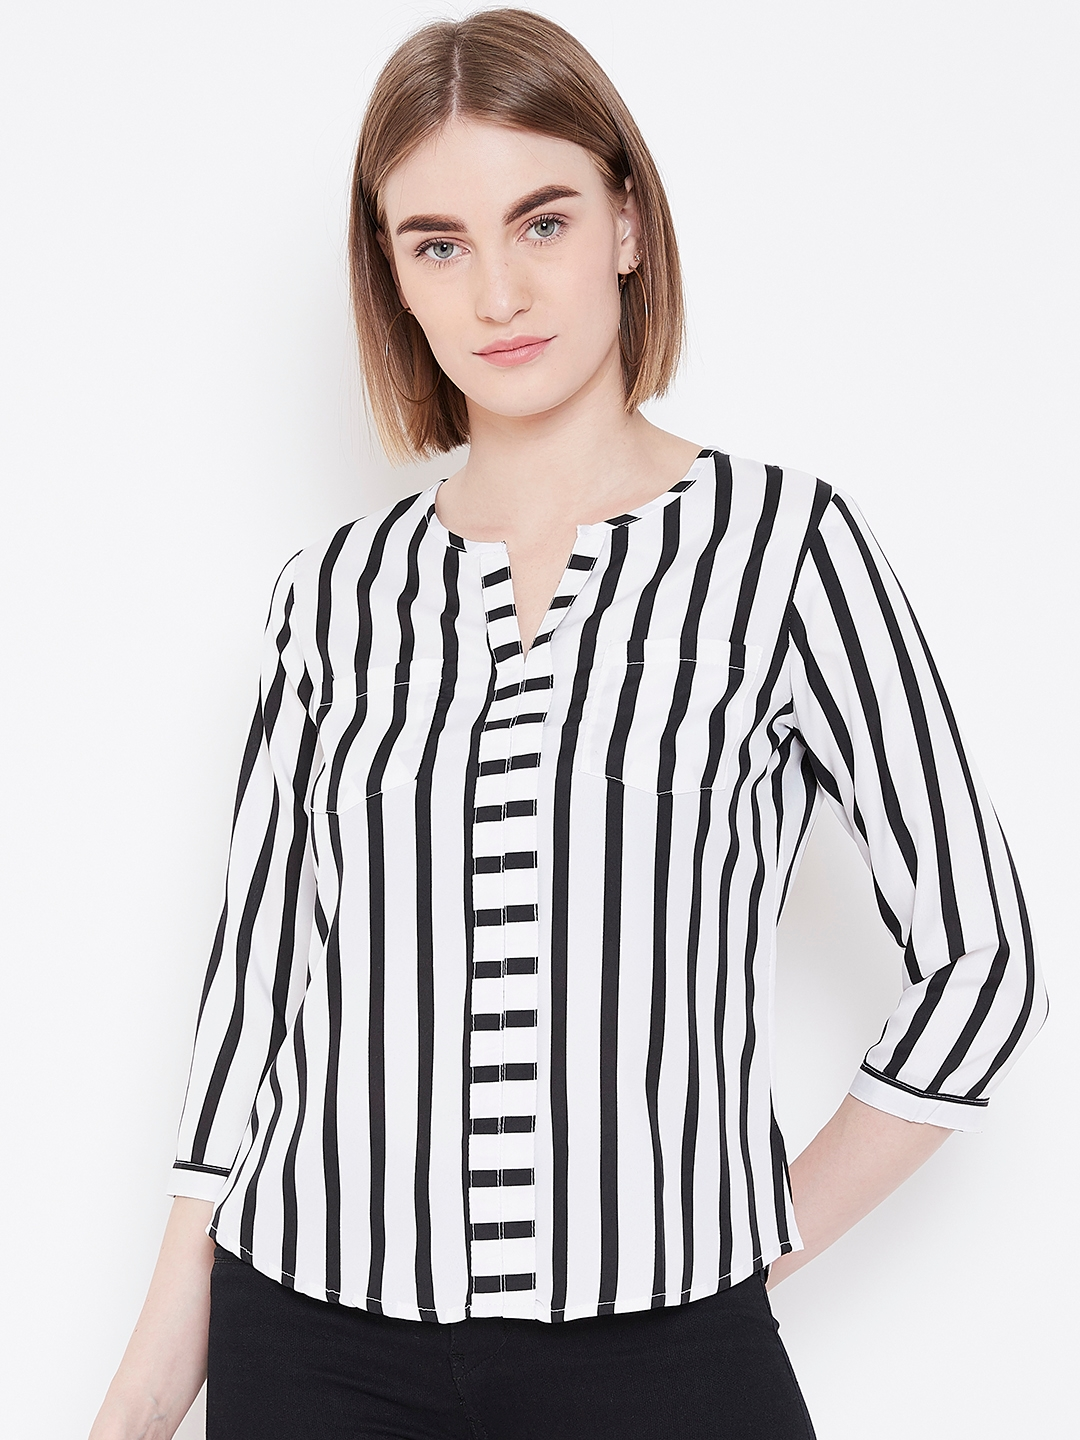 Deewa Women White   Black Striped Top